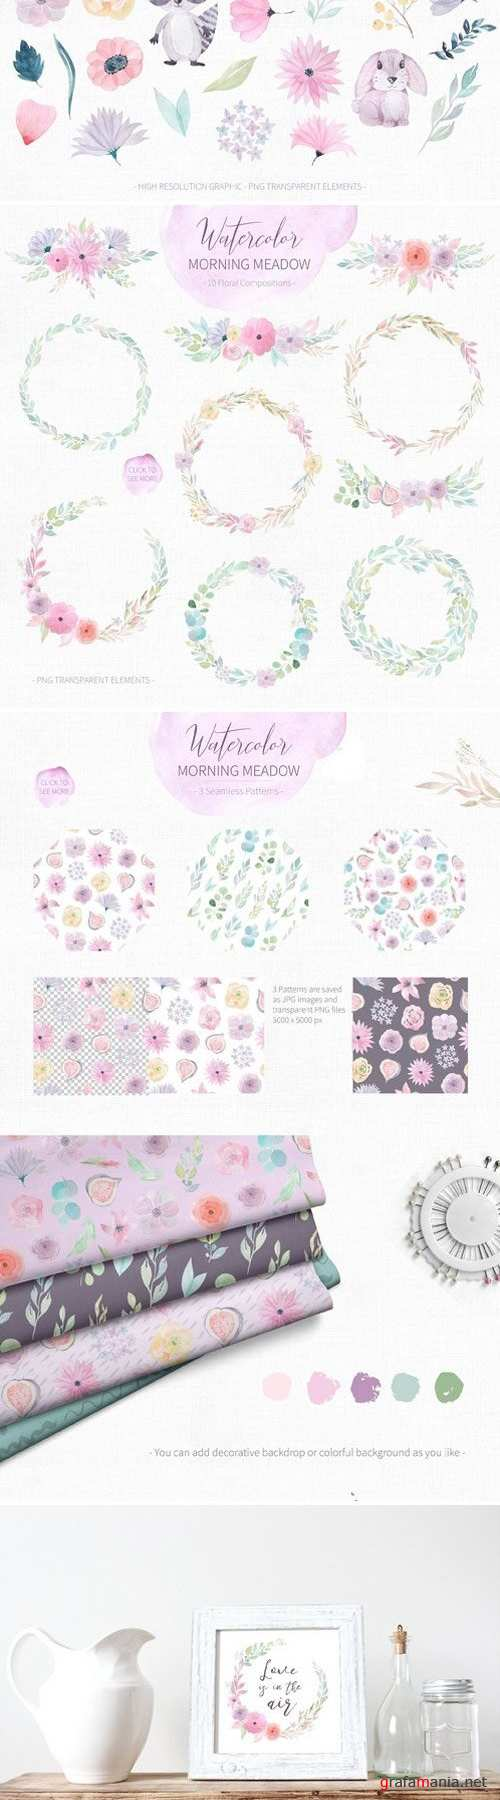 Watercolor Morning Meadow Floral Set 2138791